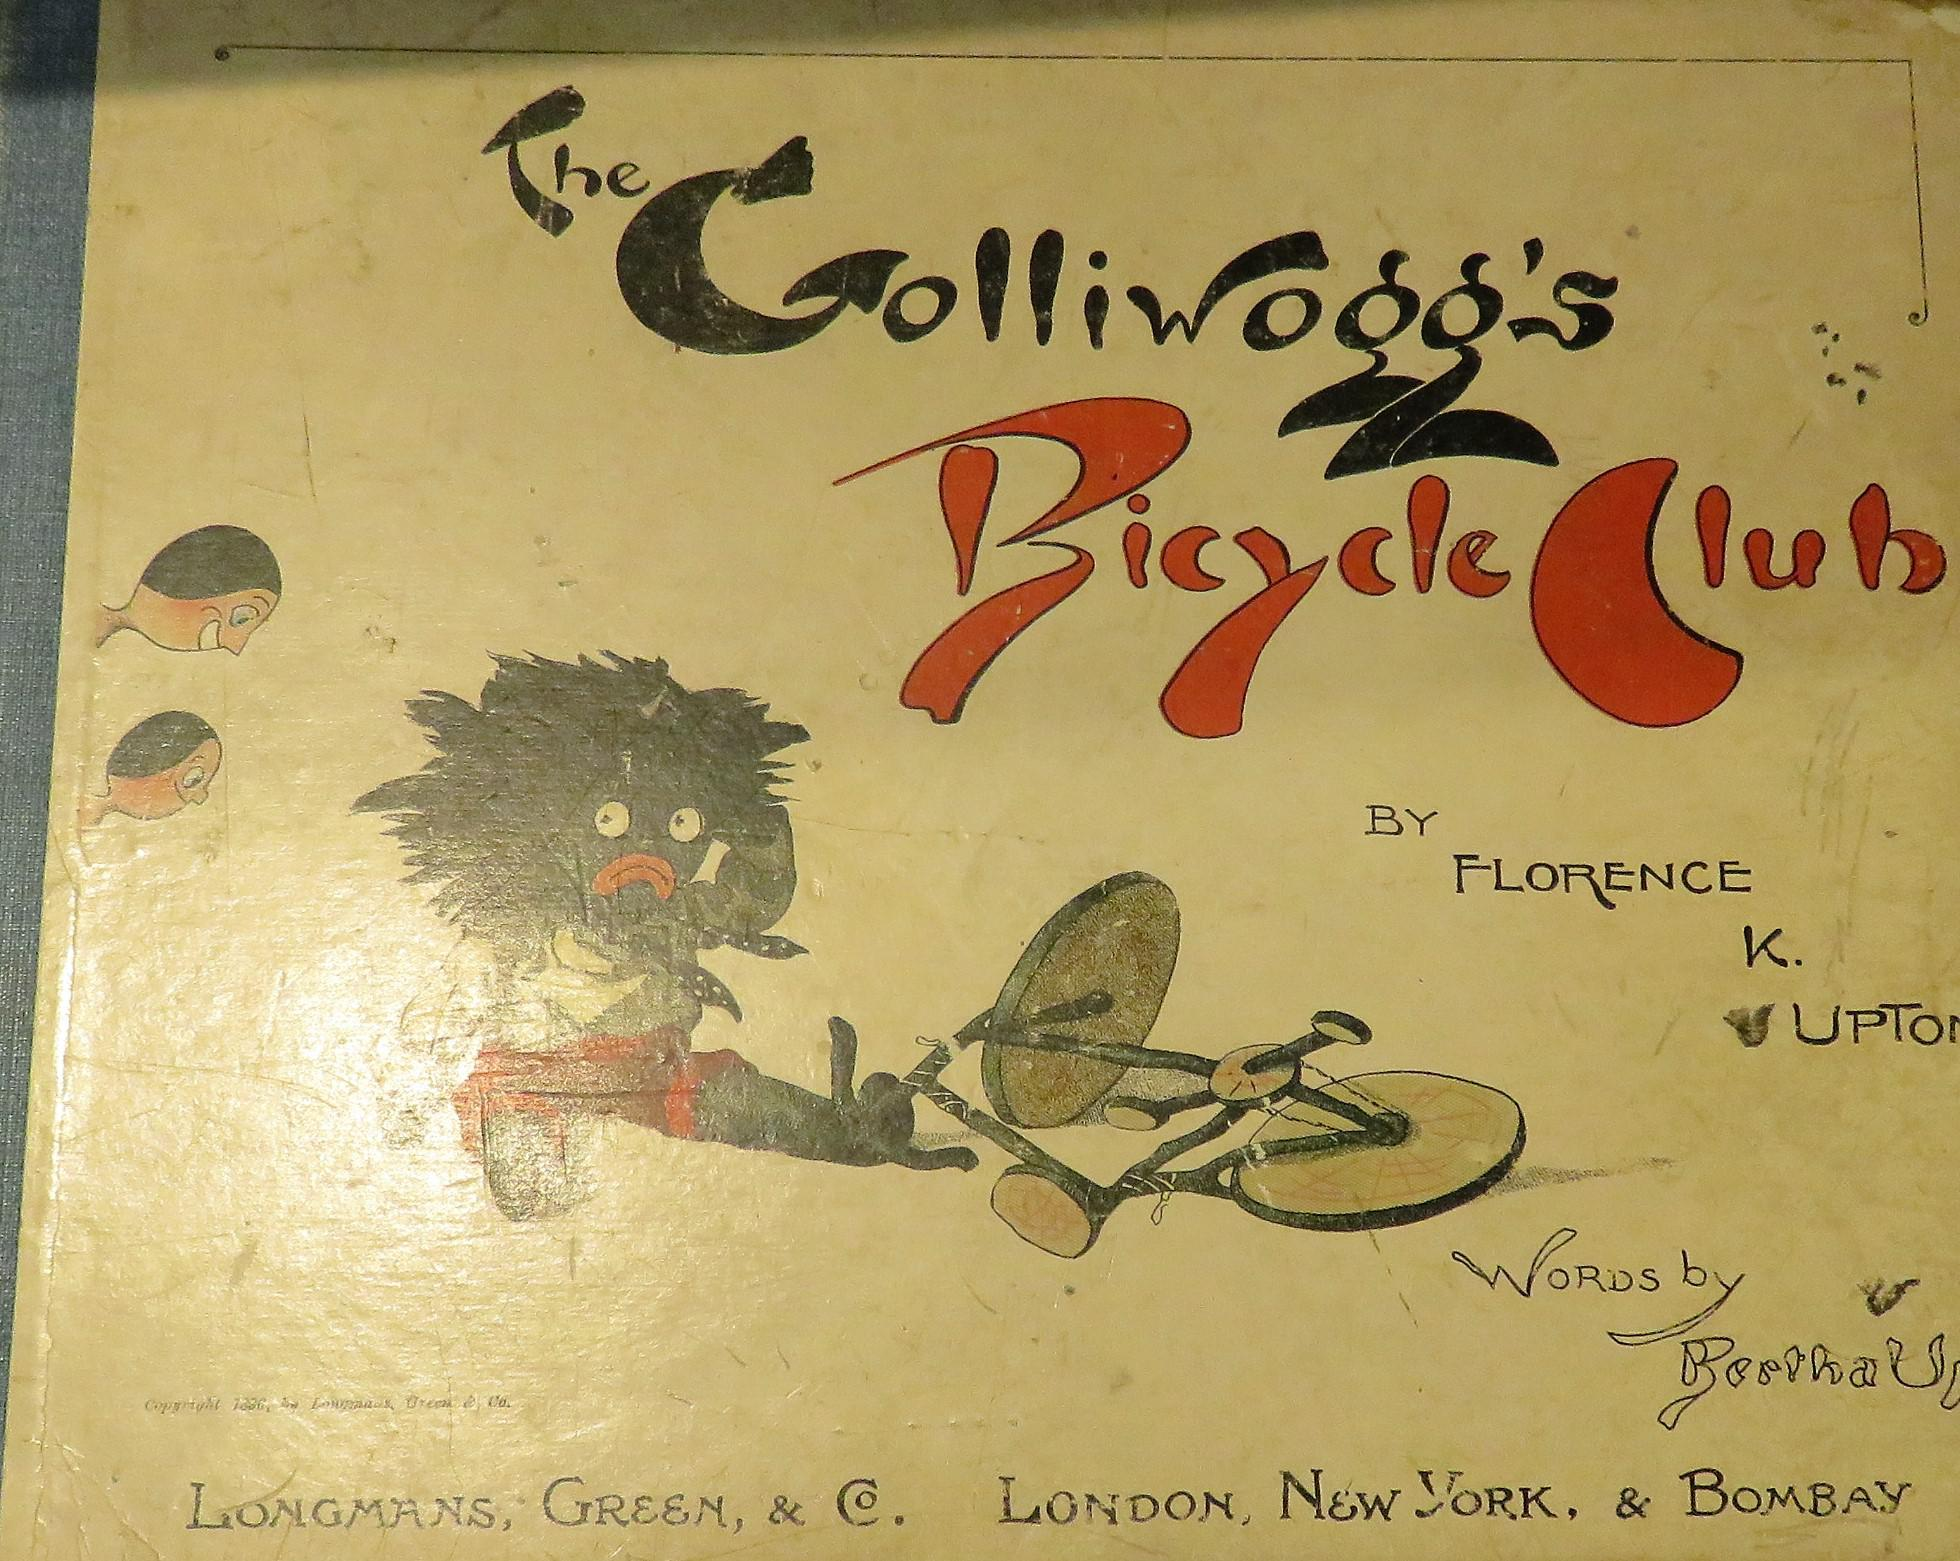 The Golliwogg's Bicycle Club